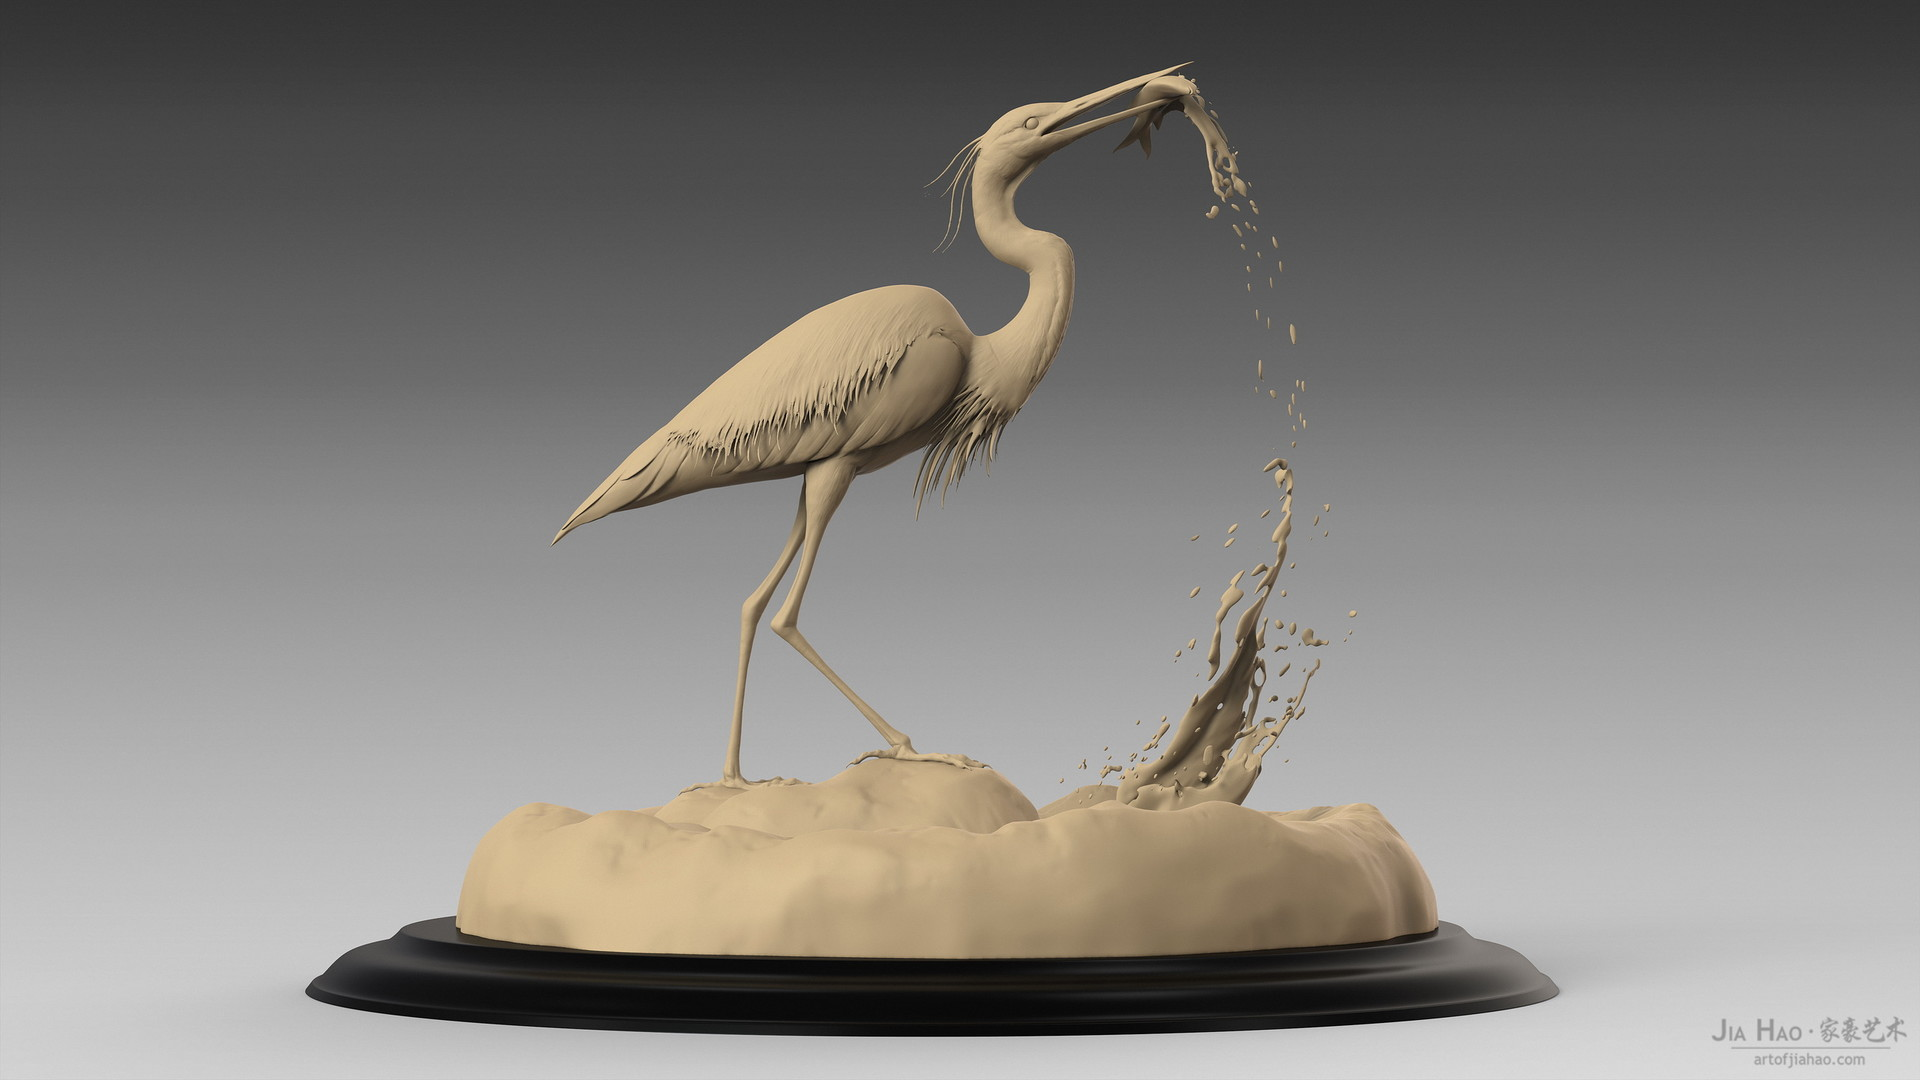 Jia hao blueheron digitalsculpturea 03